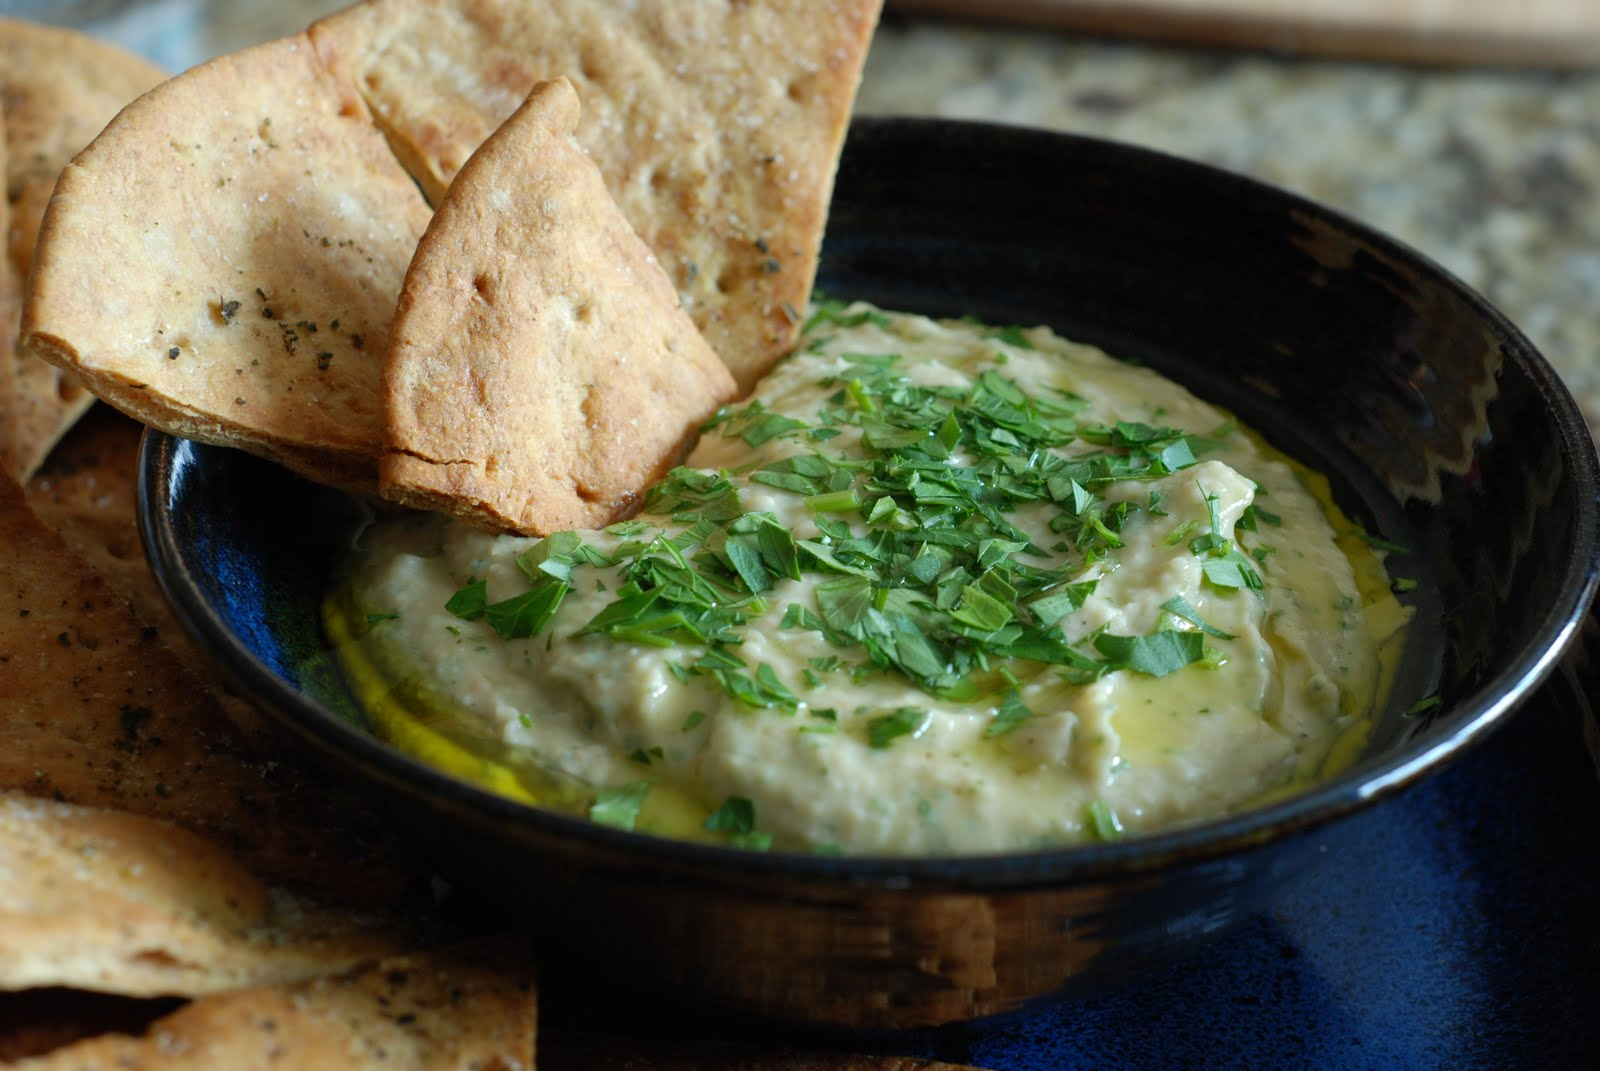 White Bean Dip with Pita Chips - Simply So Good